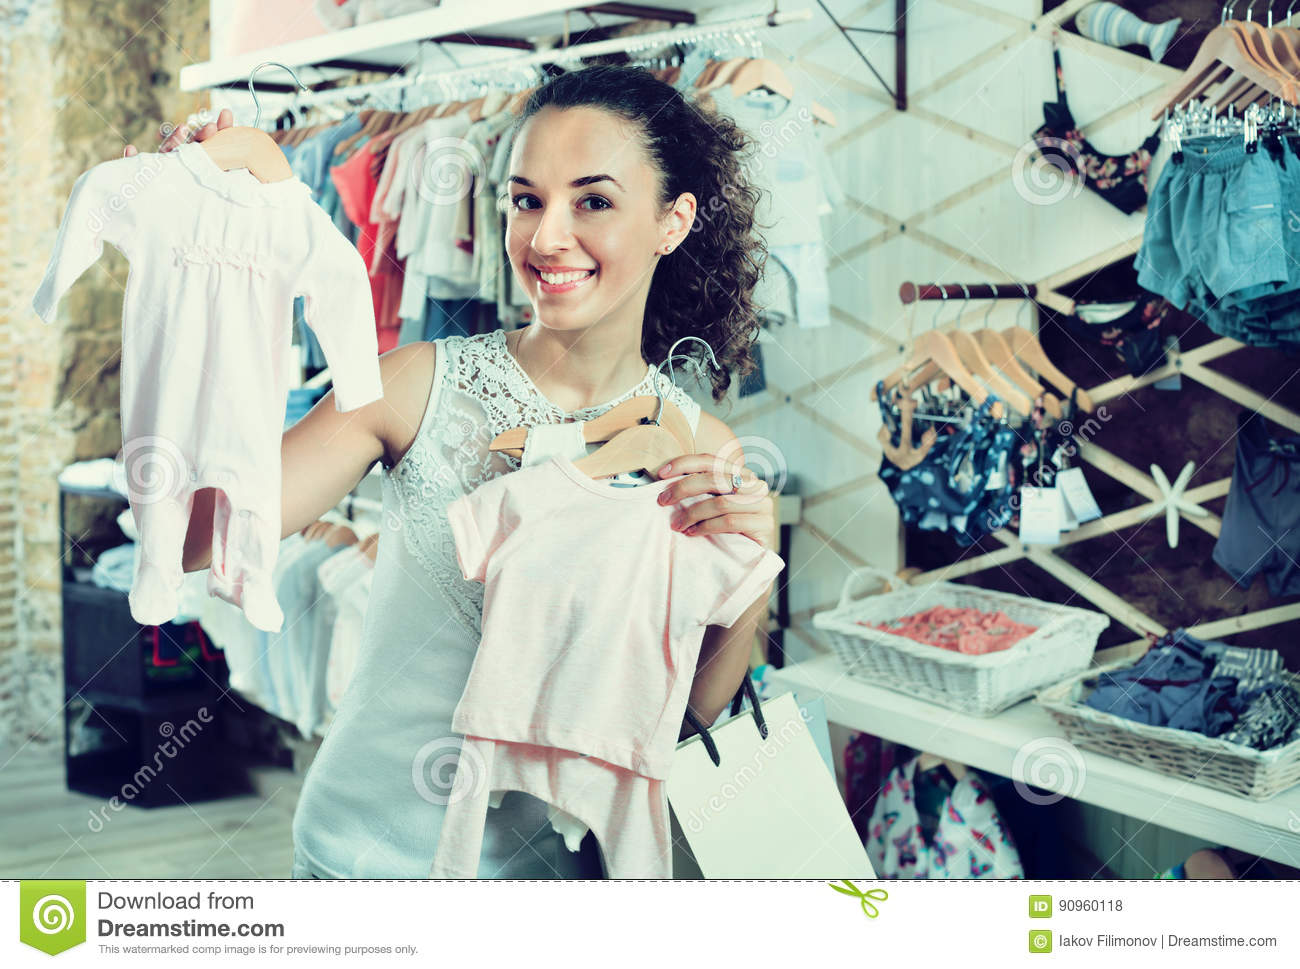 578a290bec Young cheerful woman choosing baby pajamas at a kids apparel boutique. More  similar stock images